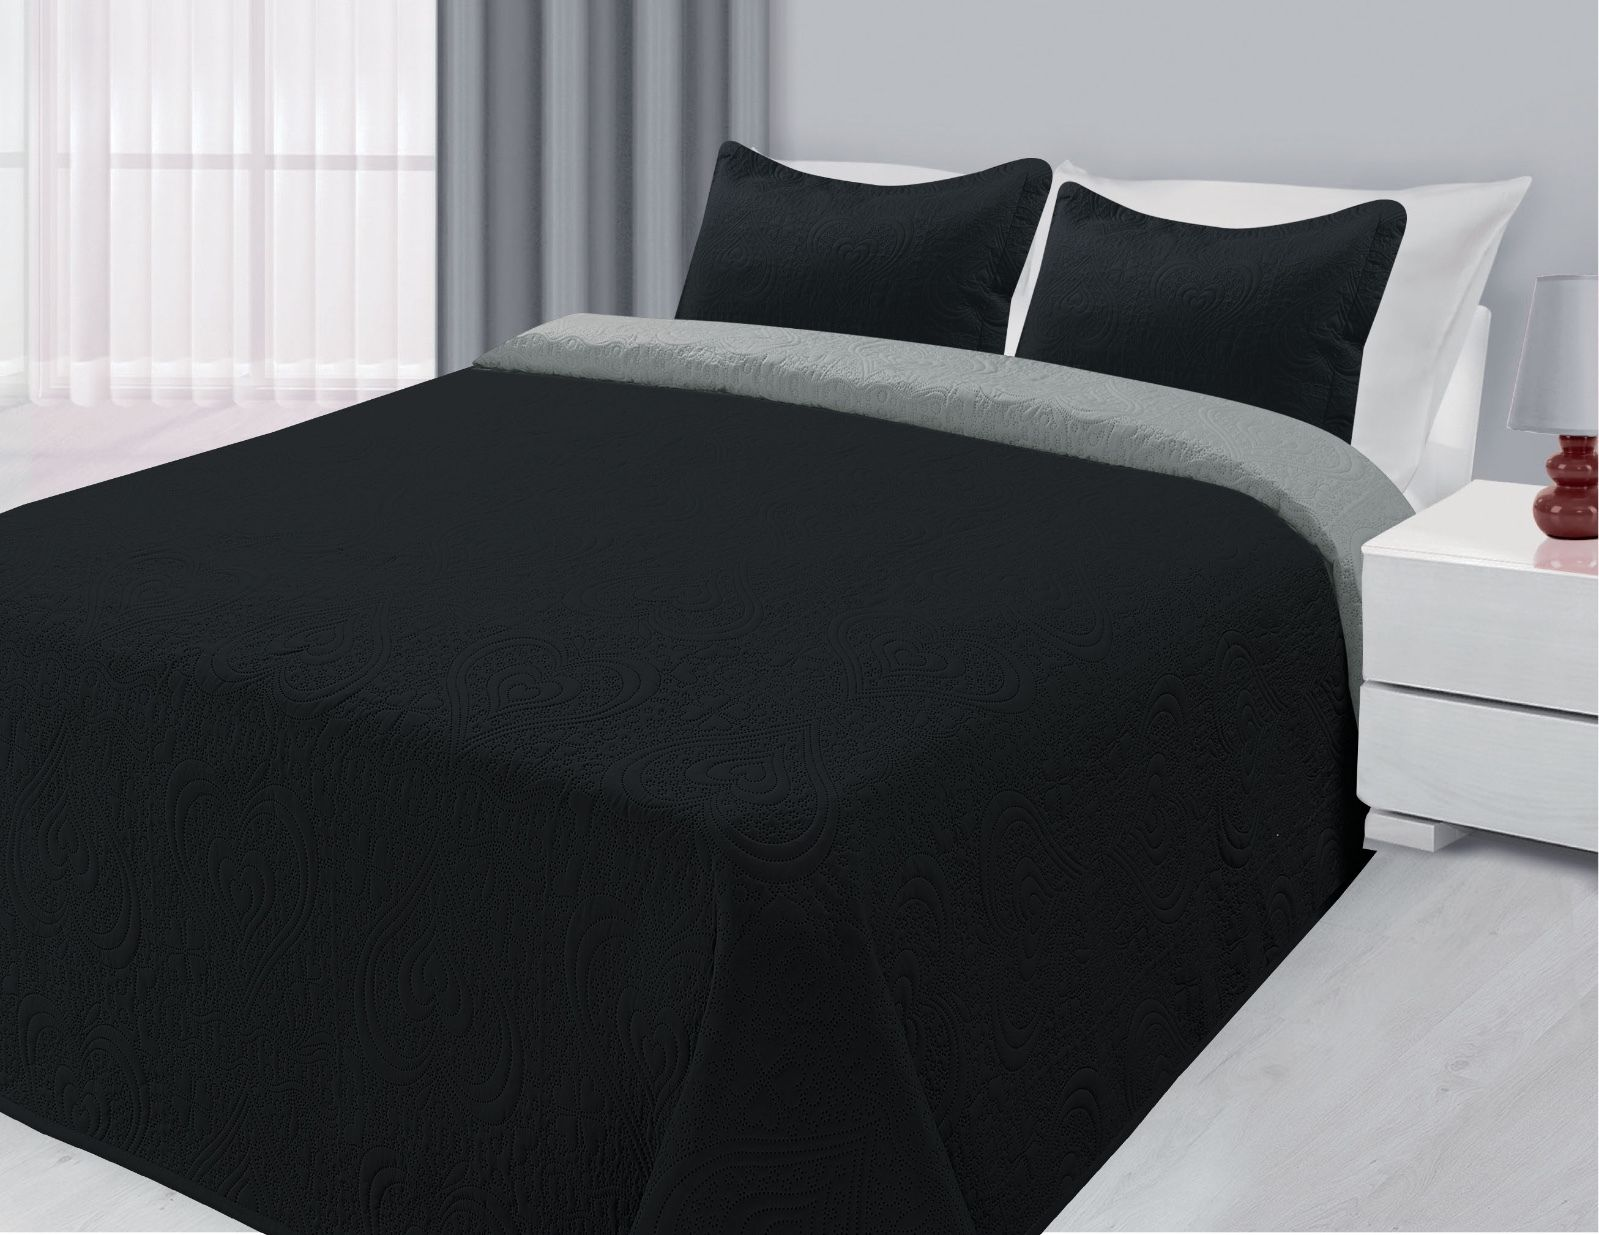 Click here to buy 3-Piece Reversible Quilted Bedspread Coverlet Black & Silver King Size.